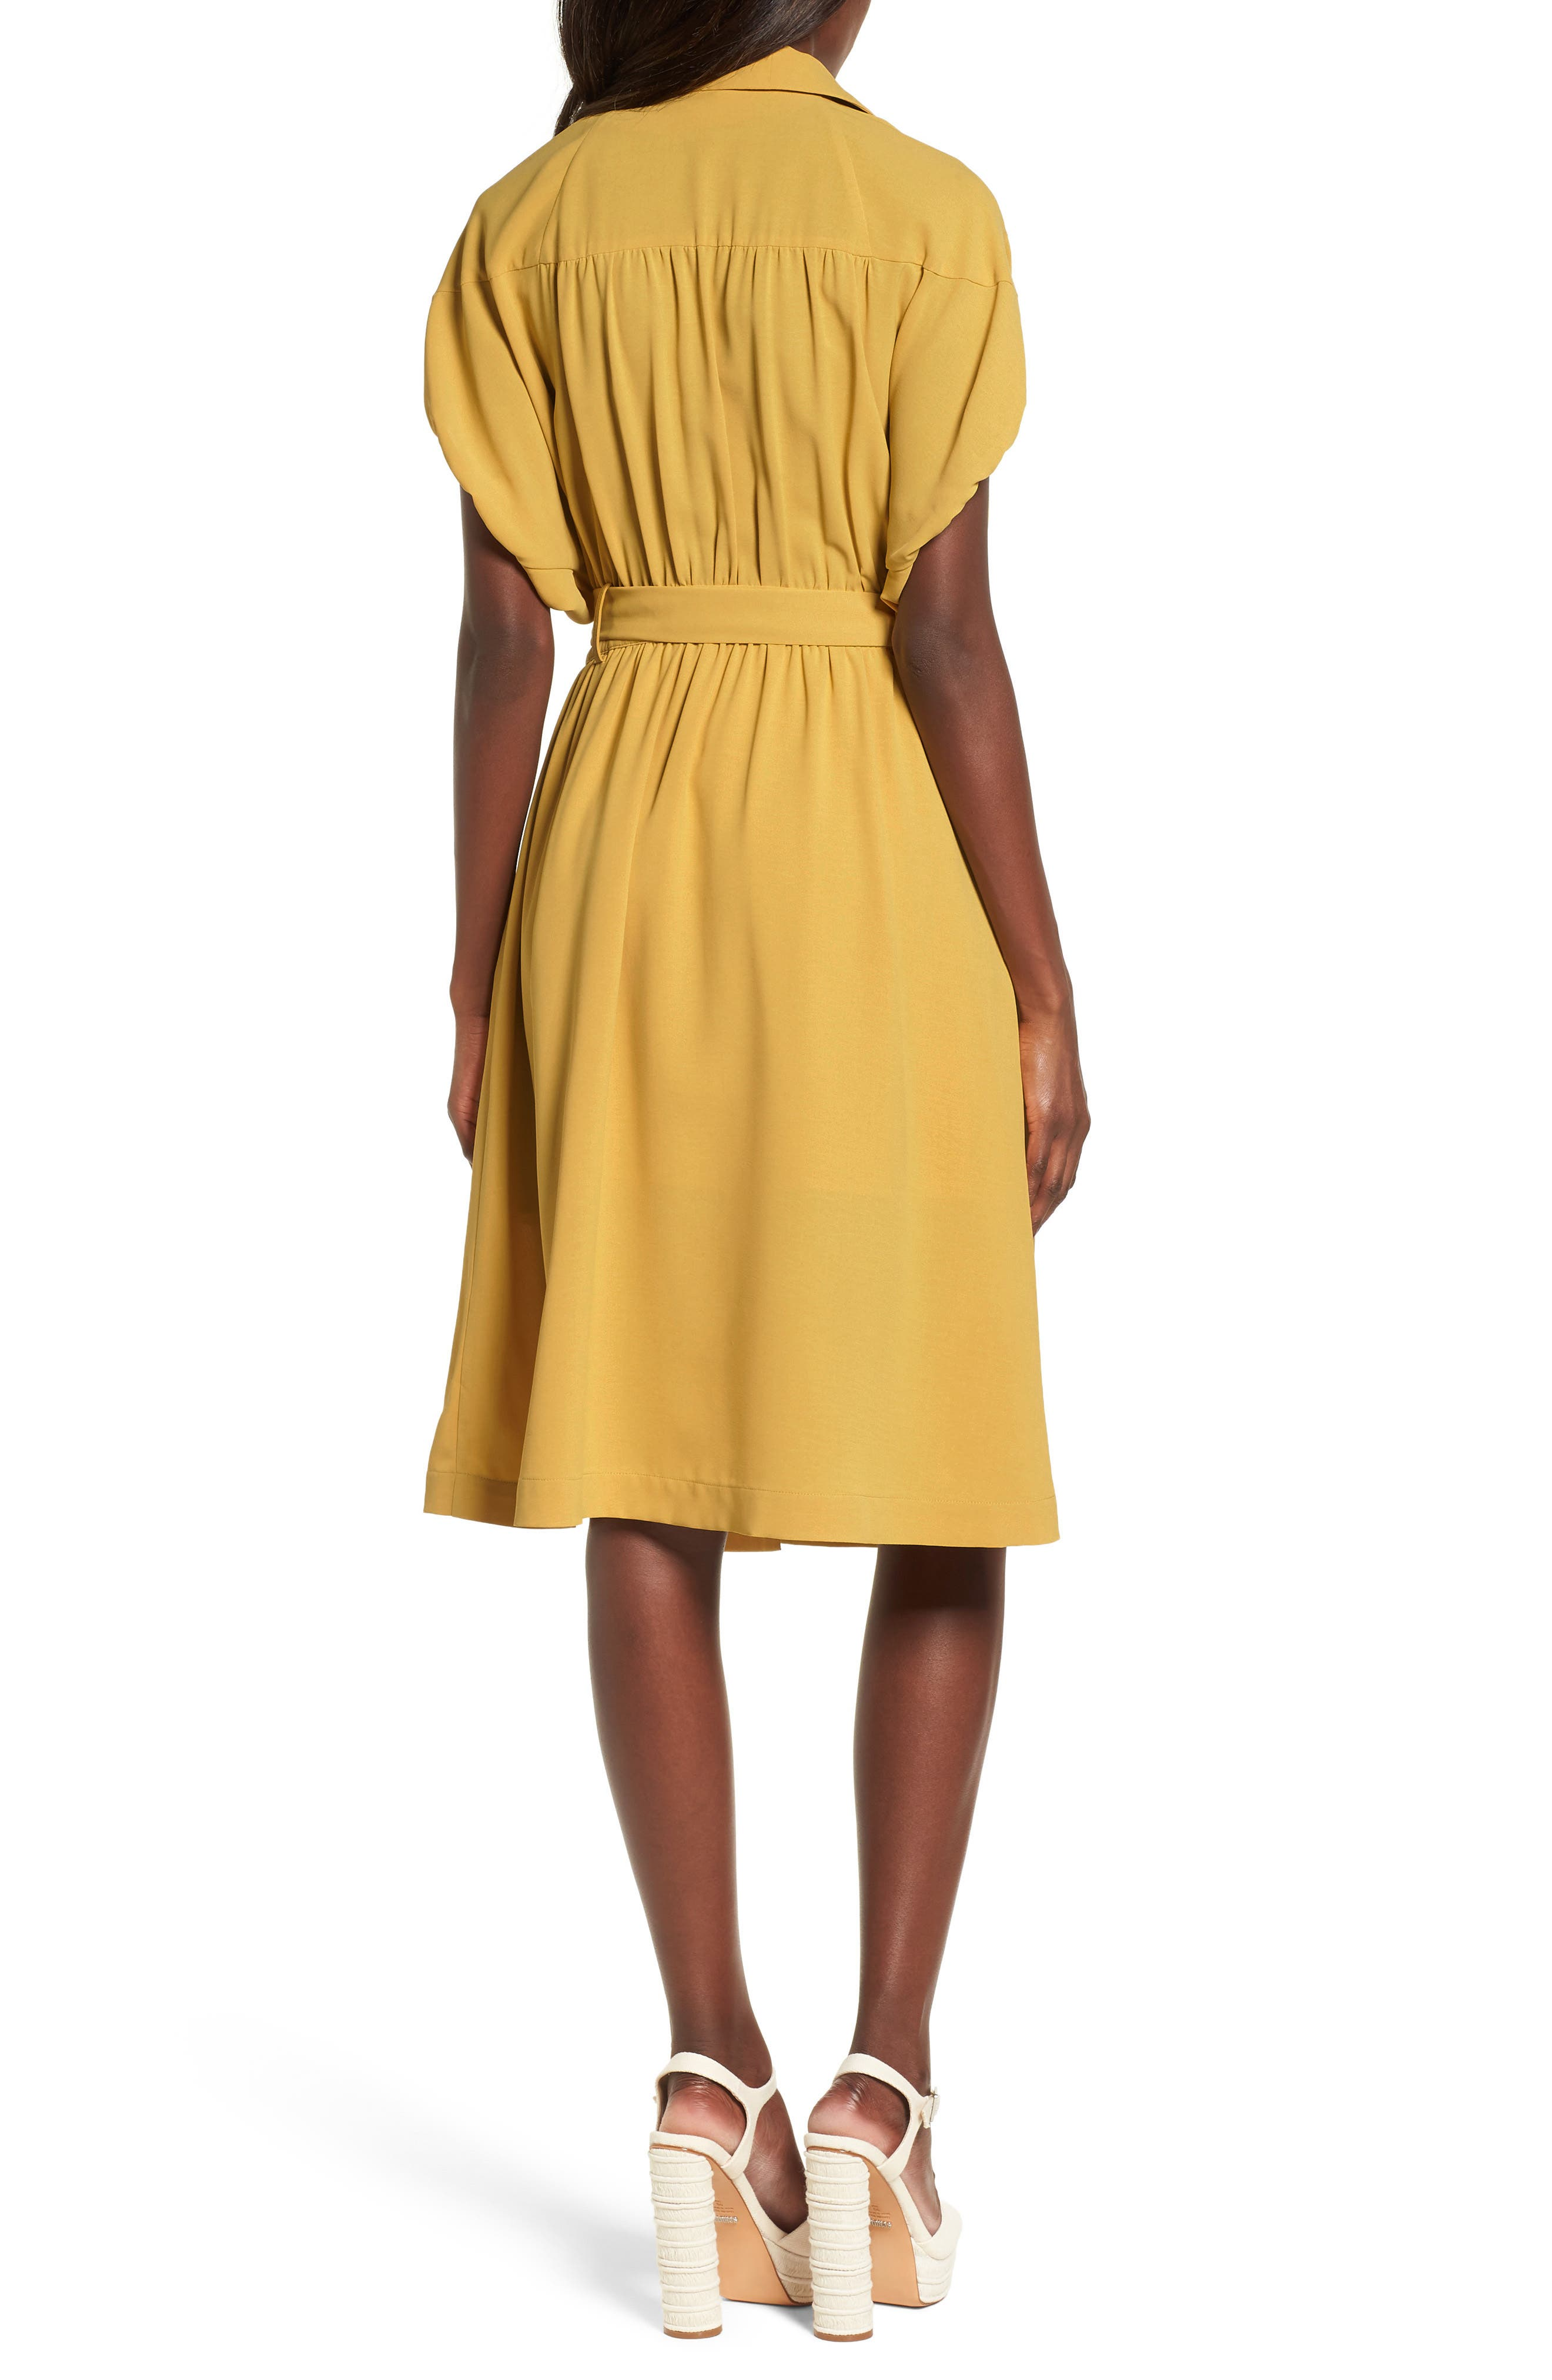 Chriselle x J.O.A. Cocoon Sleeve Dress,                             Alternate thumbnail 2, color,                             700